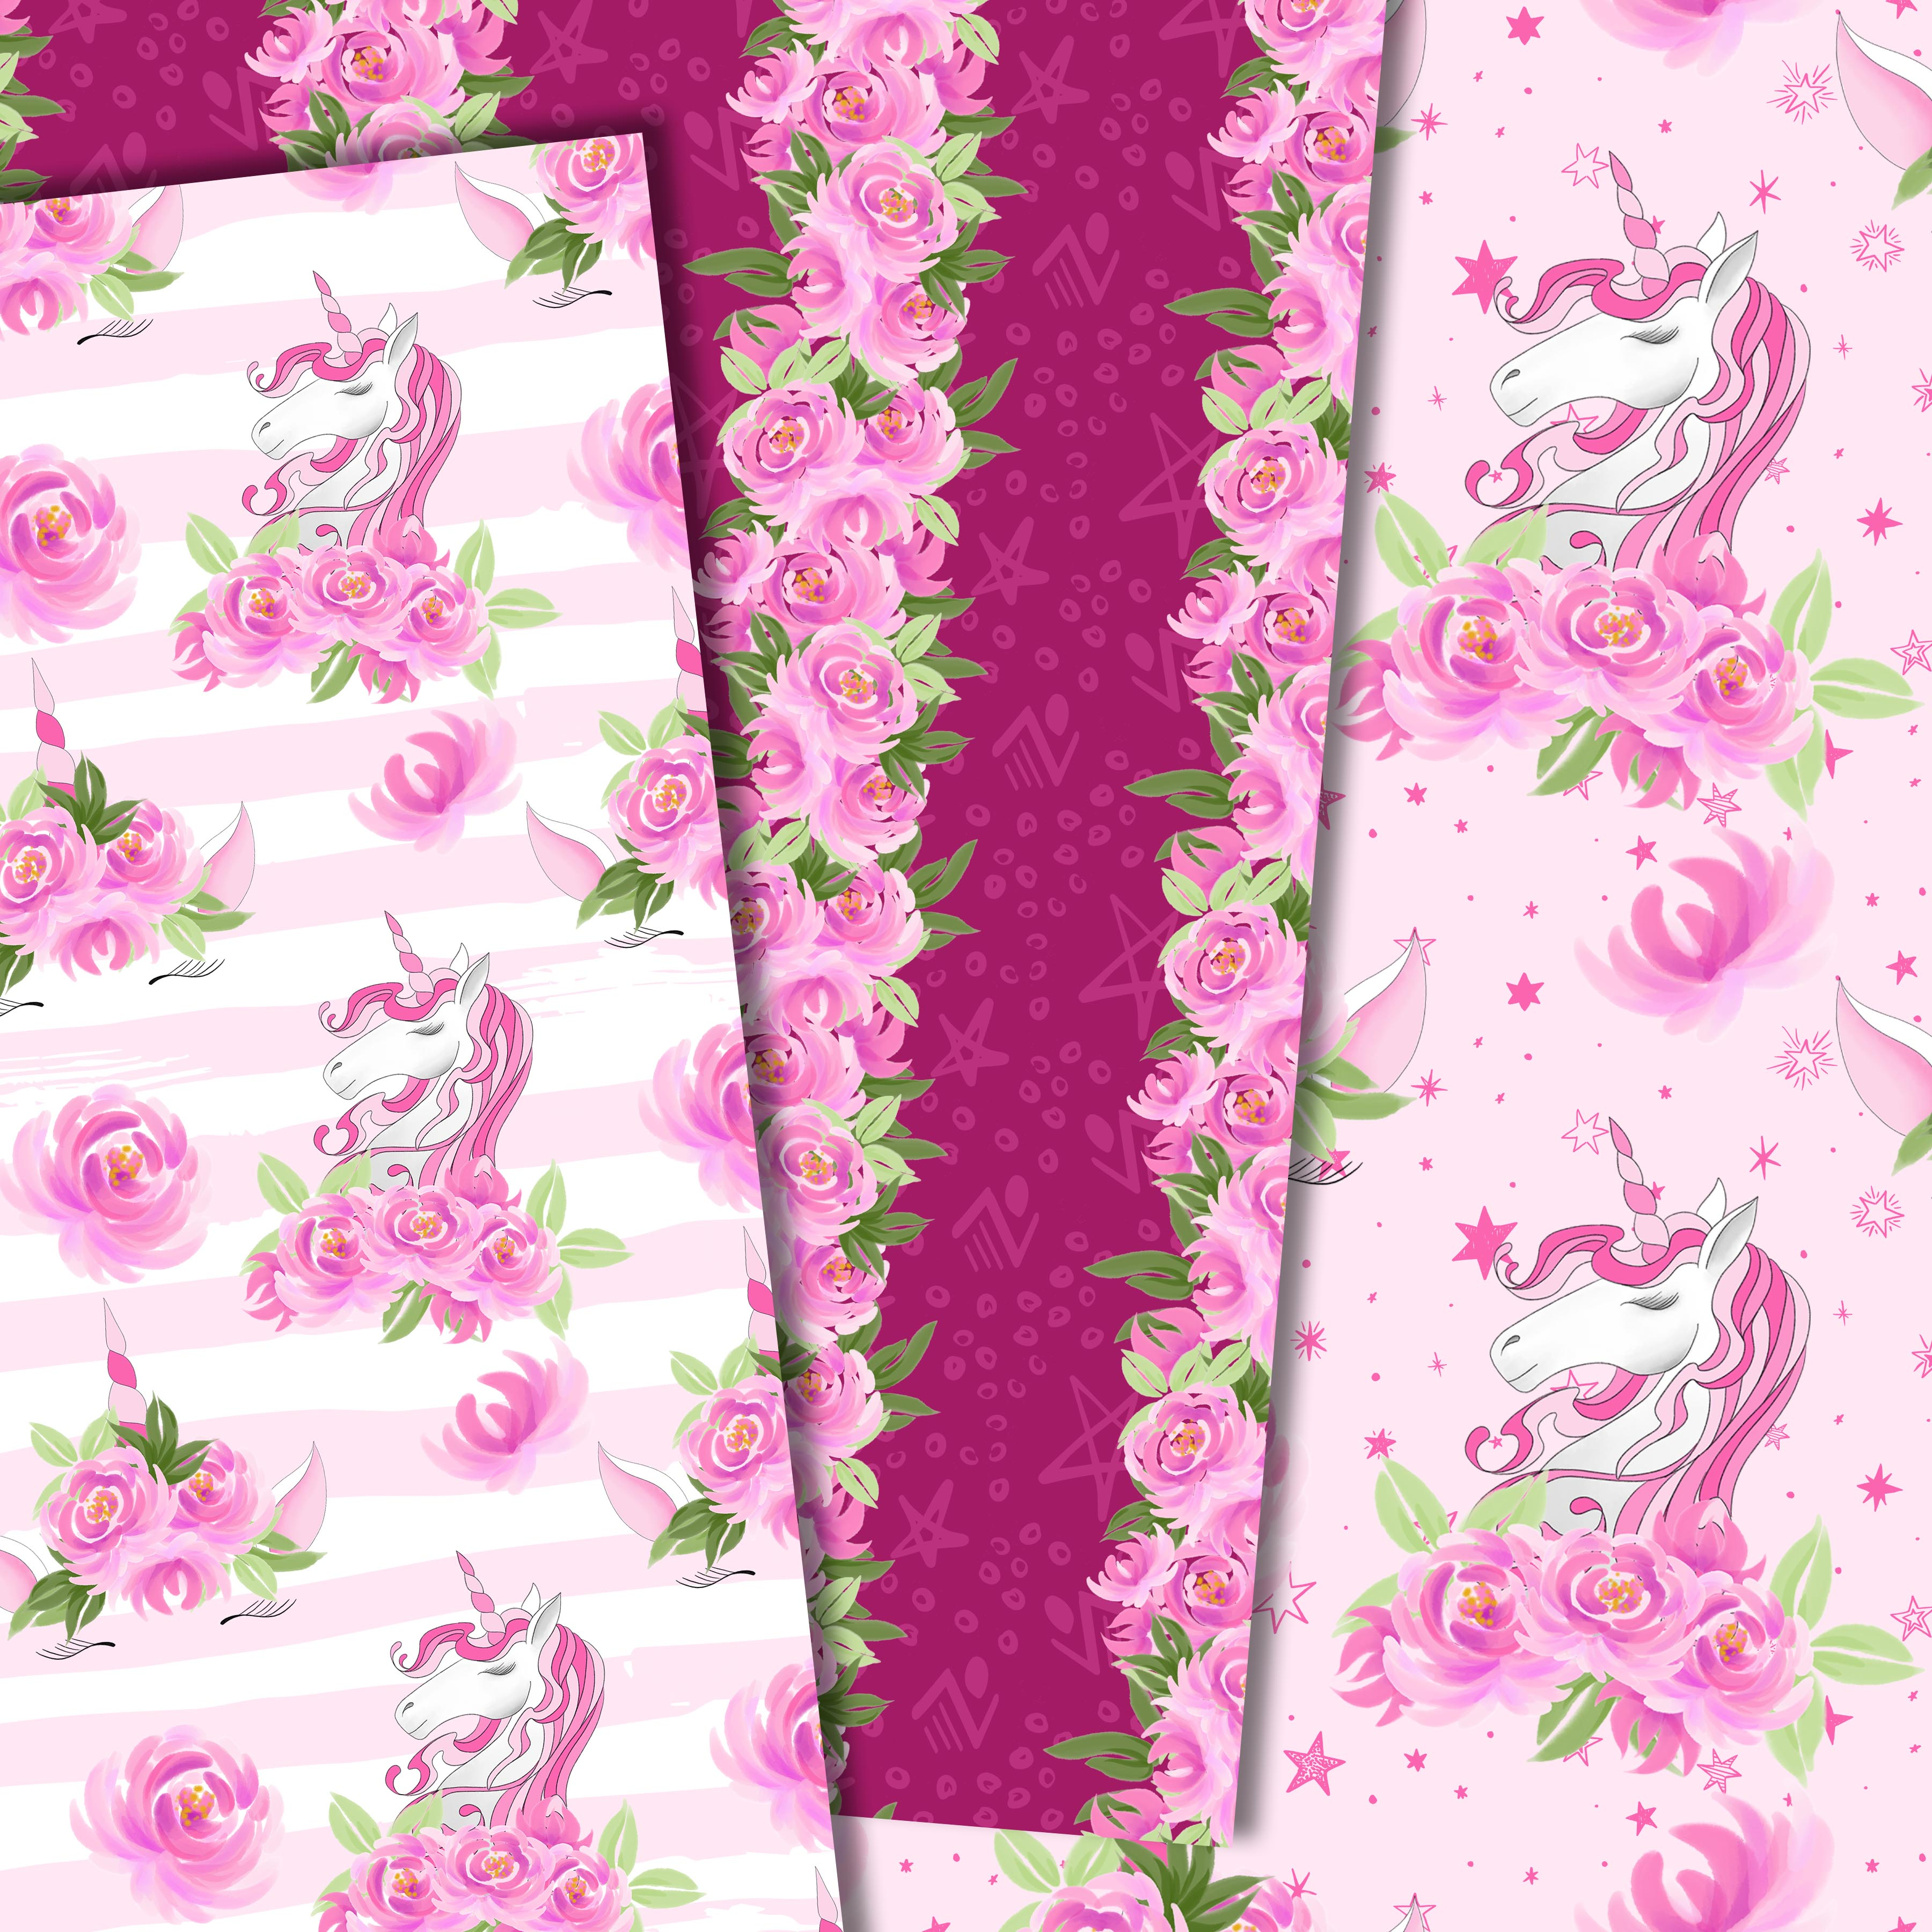 Unicorns and flowers in pink example image 6